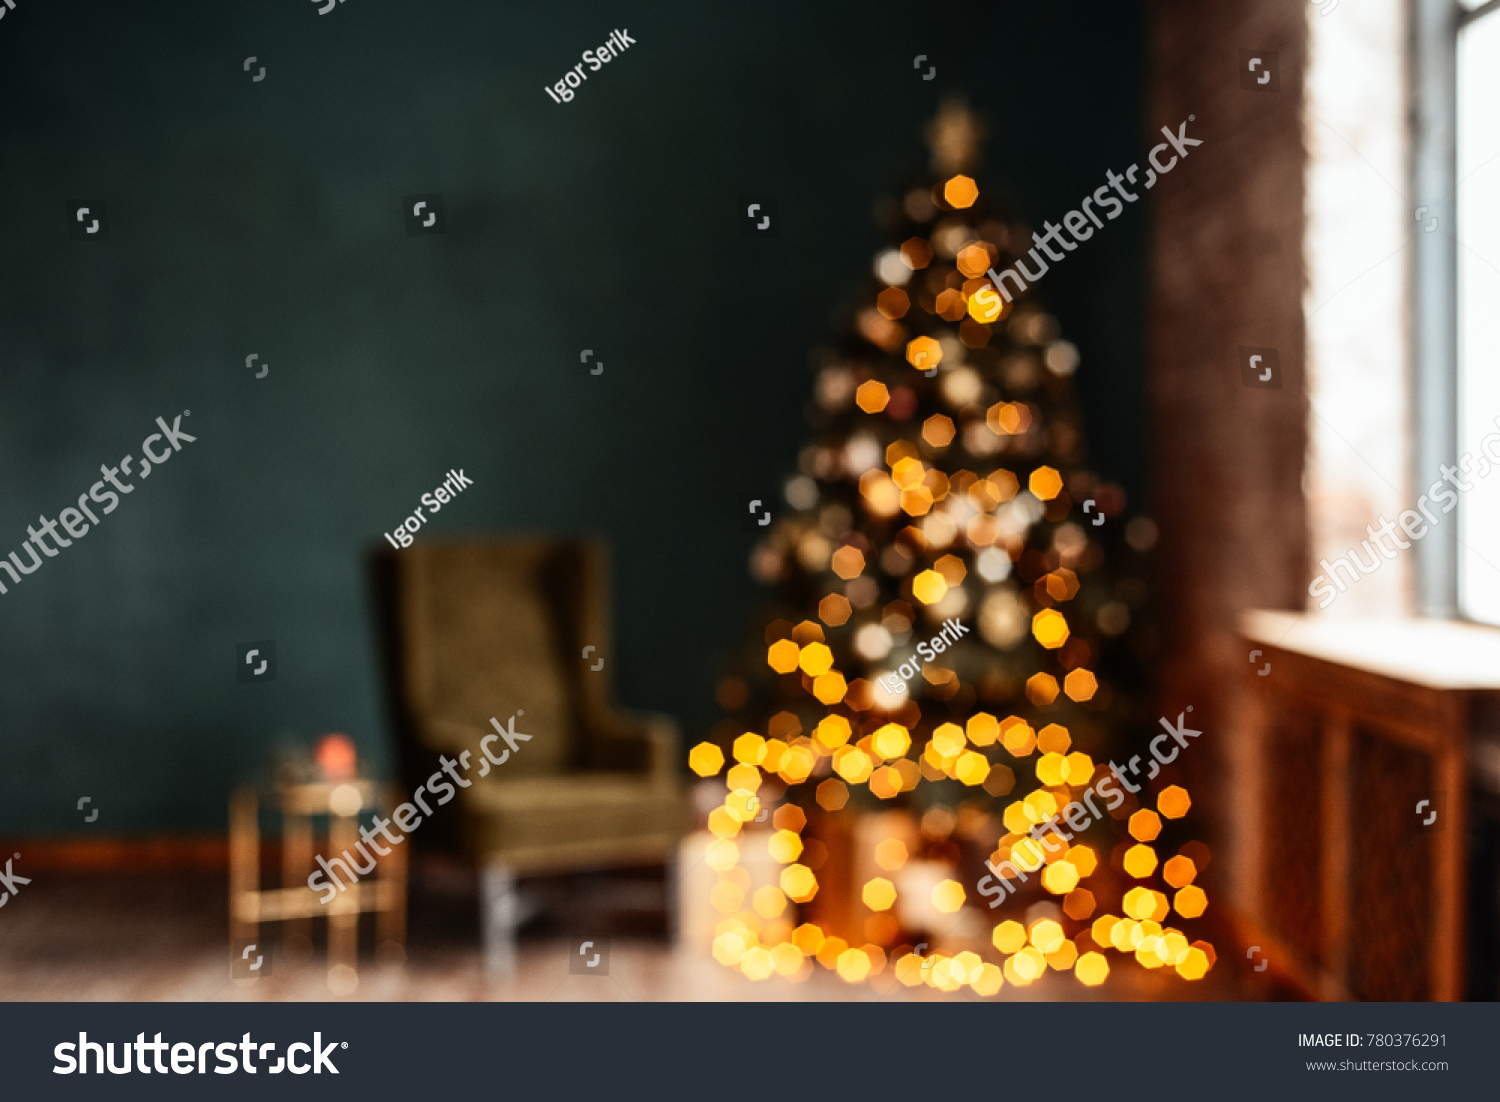 beautiful blurred background christmas gifts under tree in new year decorated house interior ez canvas